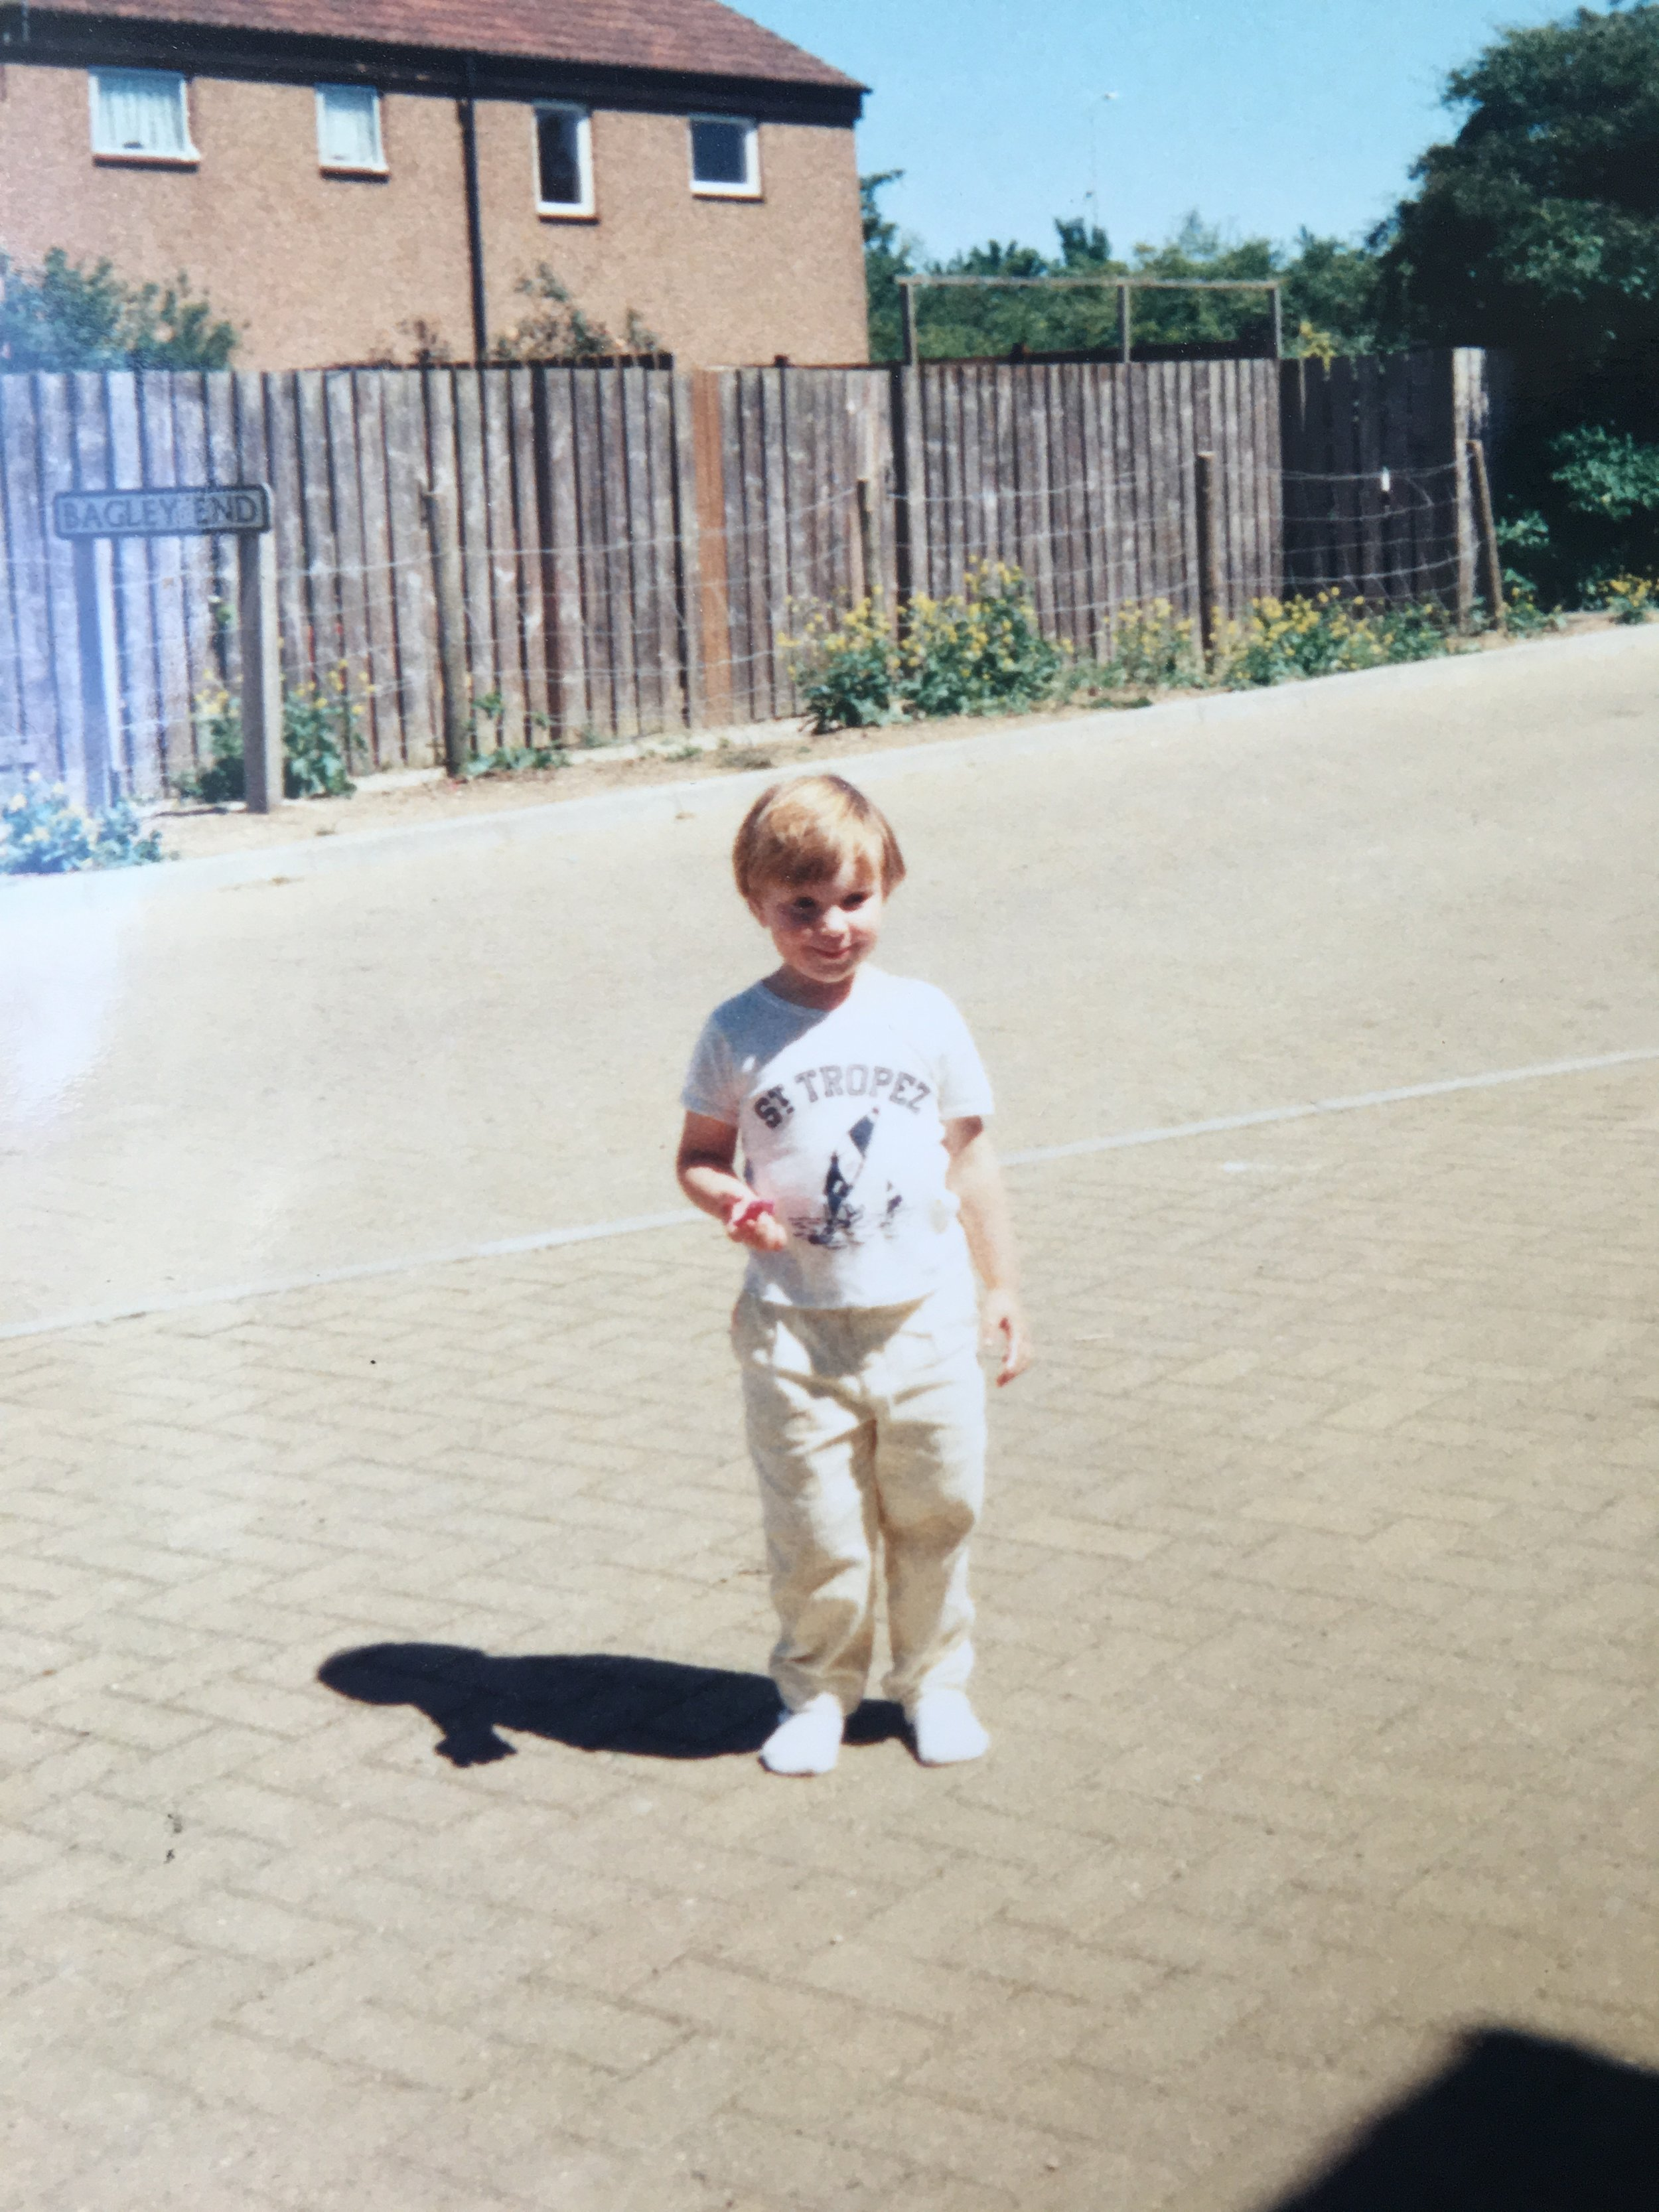 Me in front of the house I grew up in a few years before I met the local paedophile.